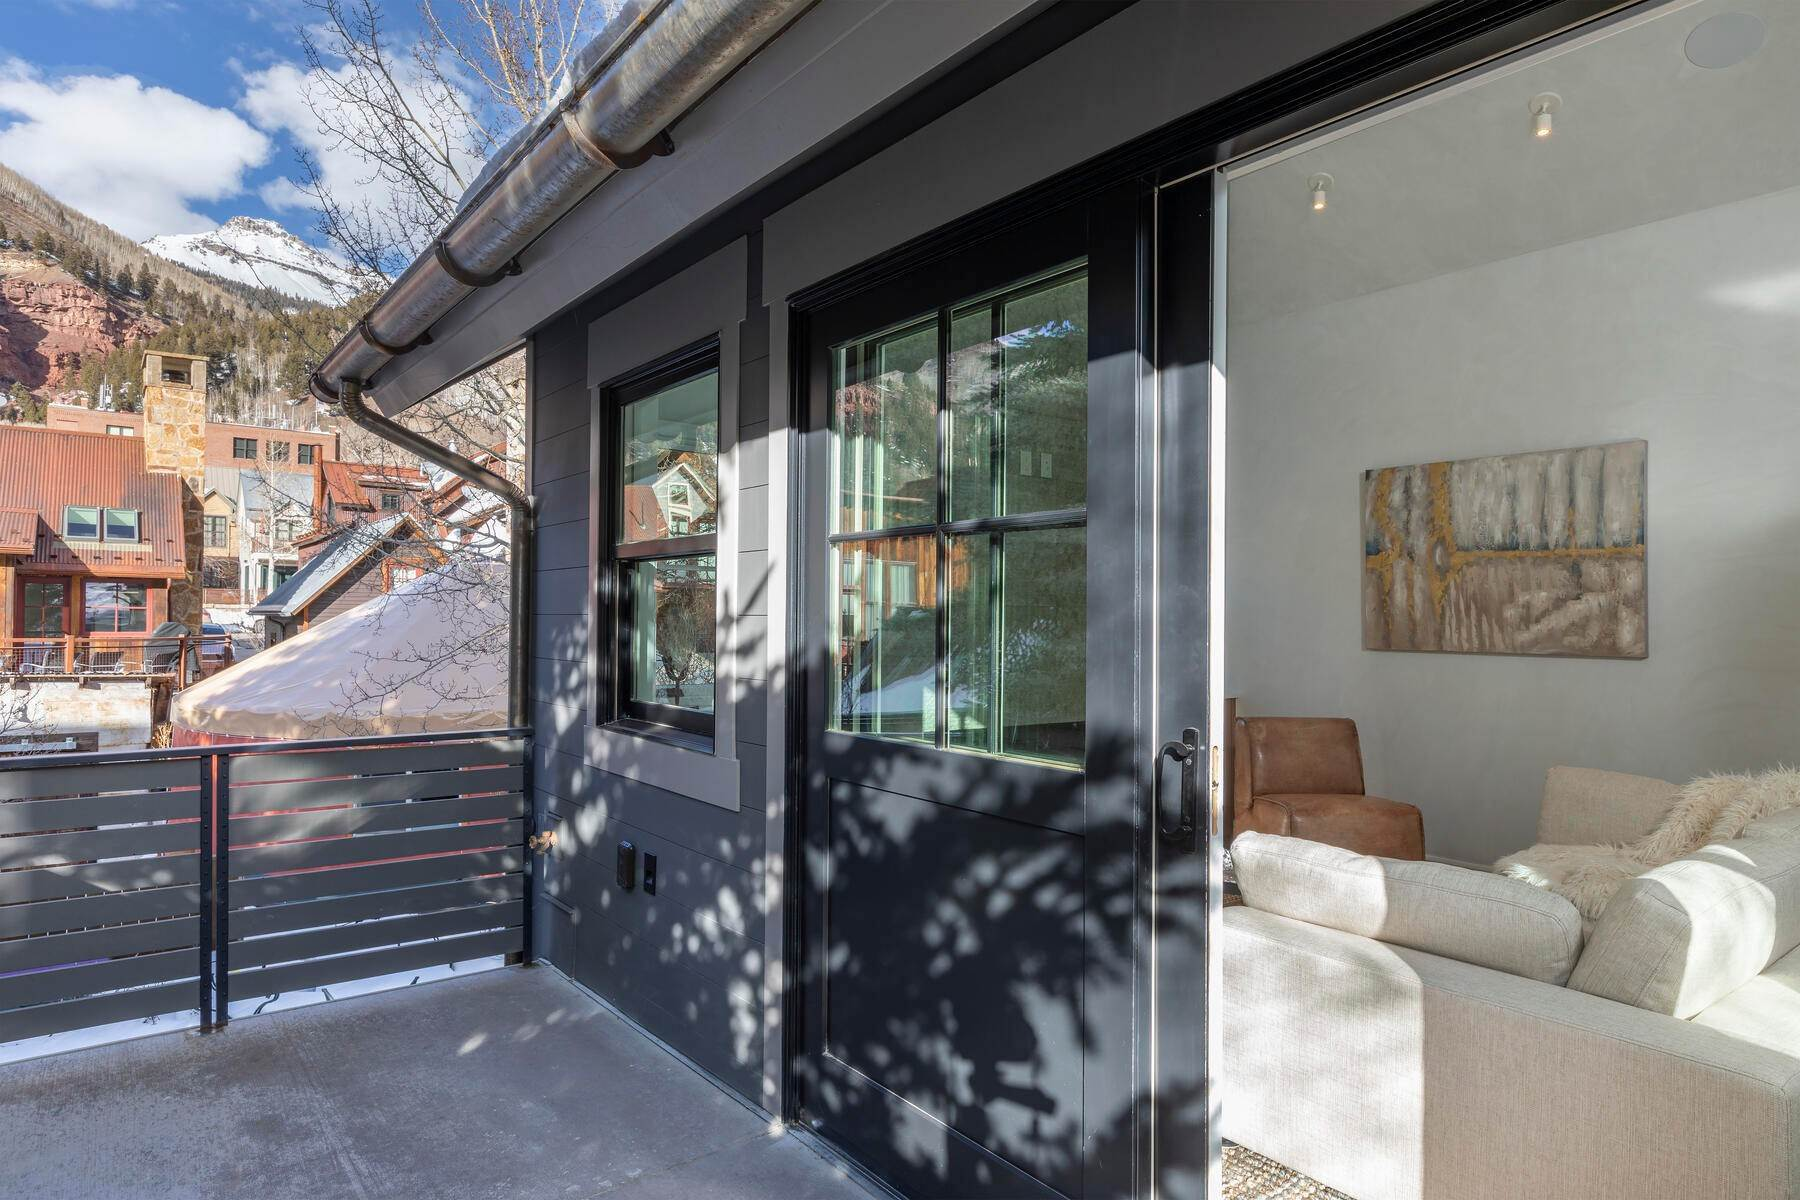 47. Property for Active at Oak at the Gondola B & C 225 S Oak Street, B & C Telluride, Colorado 81435 United States